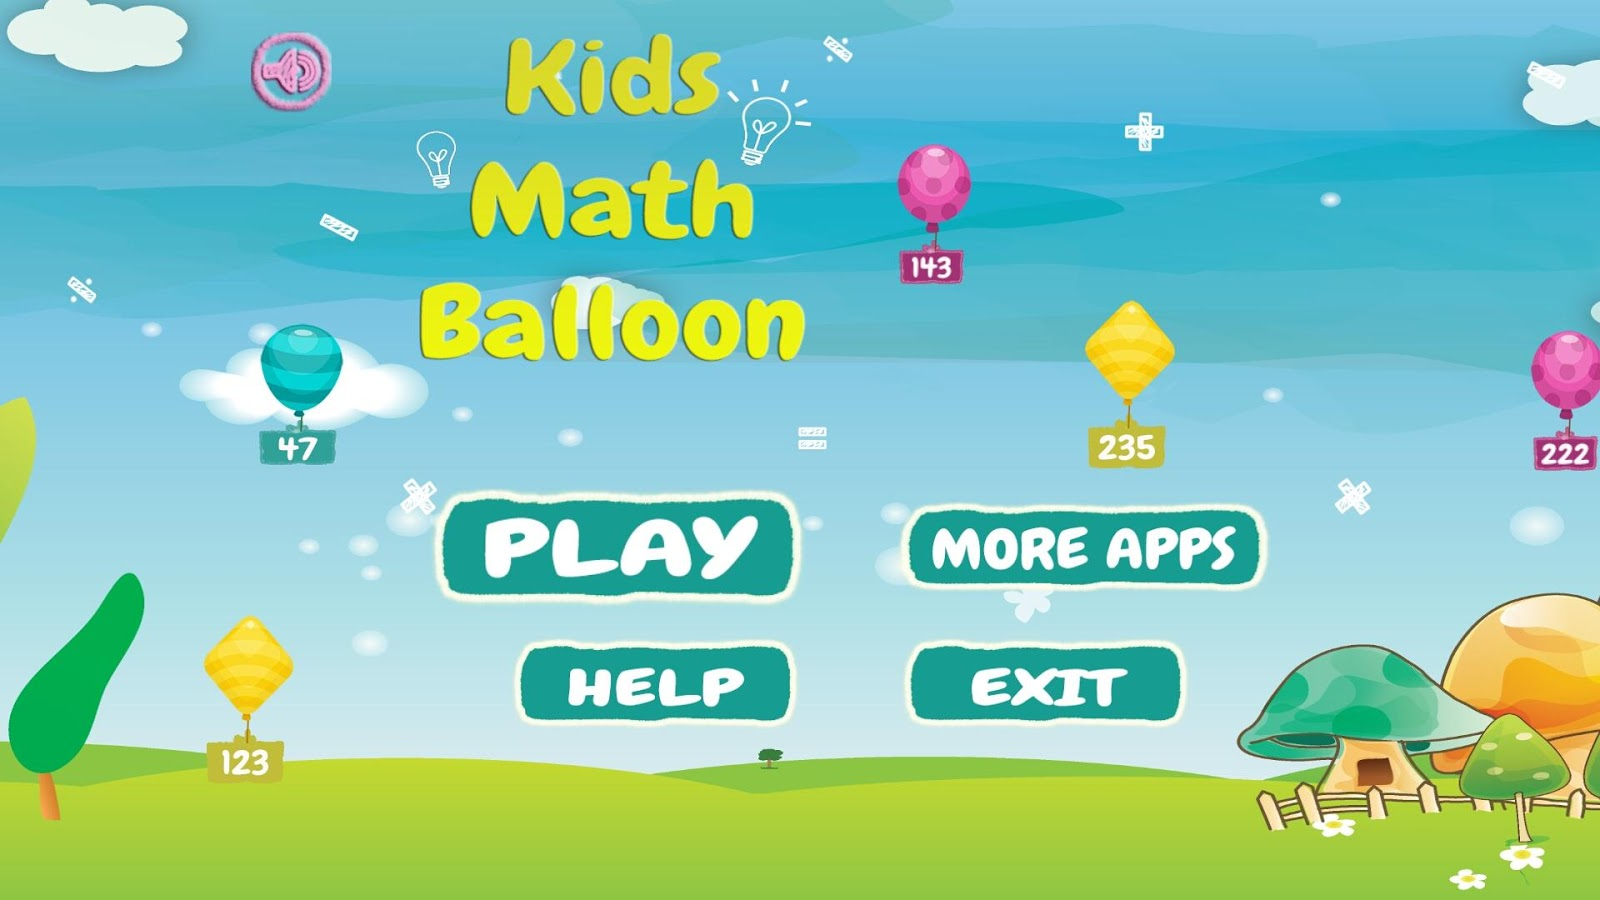 Math Balloon Games for Kids App Ranking and Store Data | App Annie